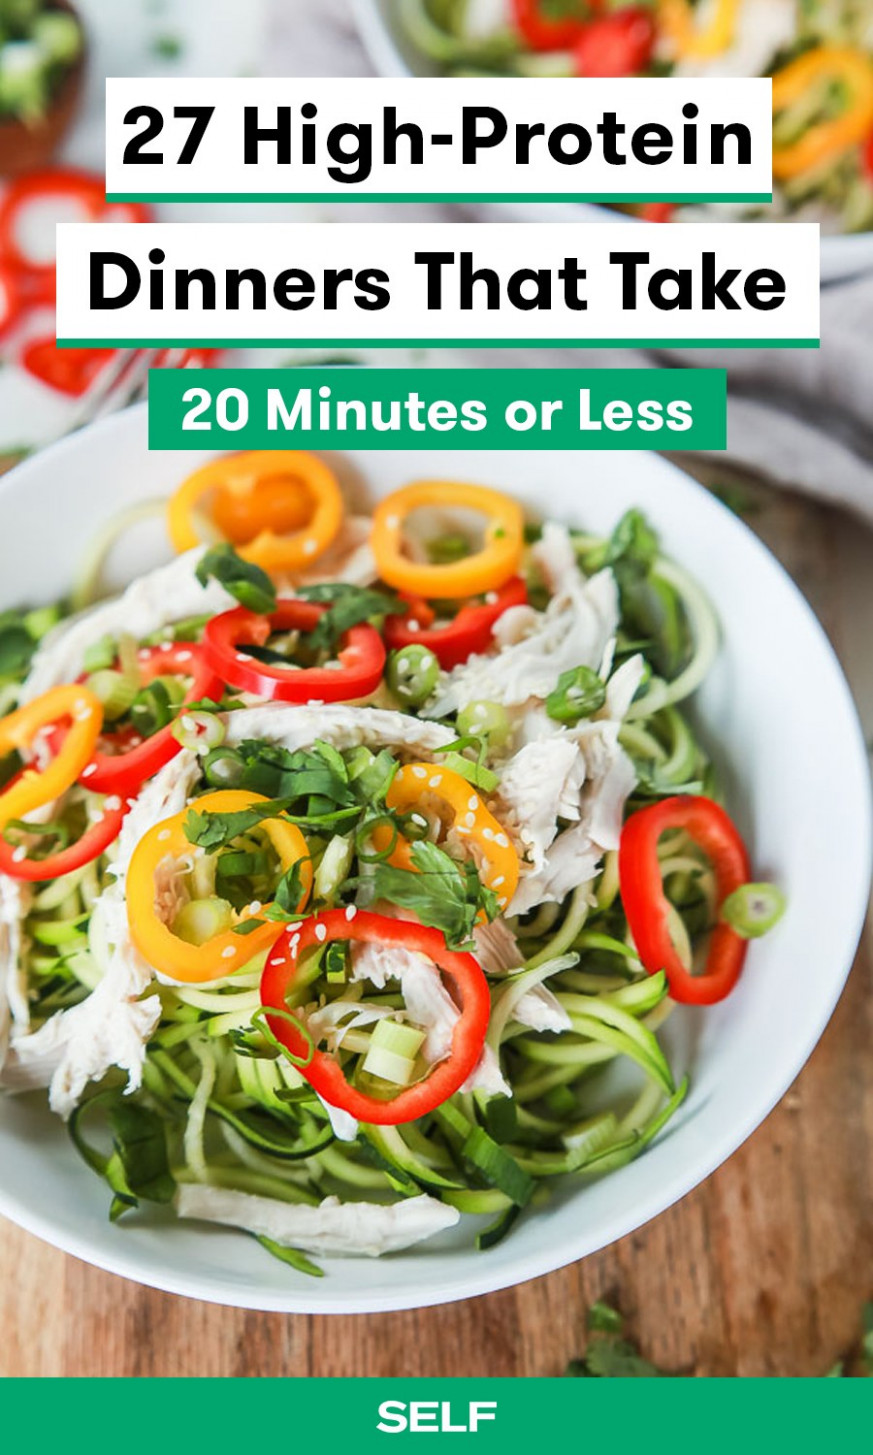 12 High-Protein Dinners You Can Make In 12 Minutes Or Less ..